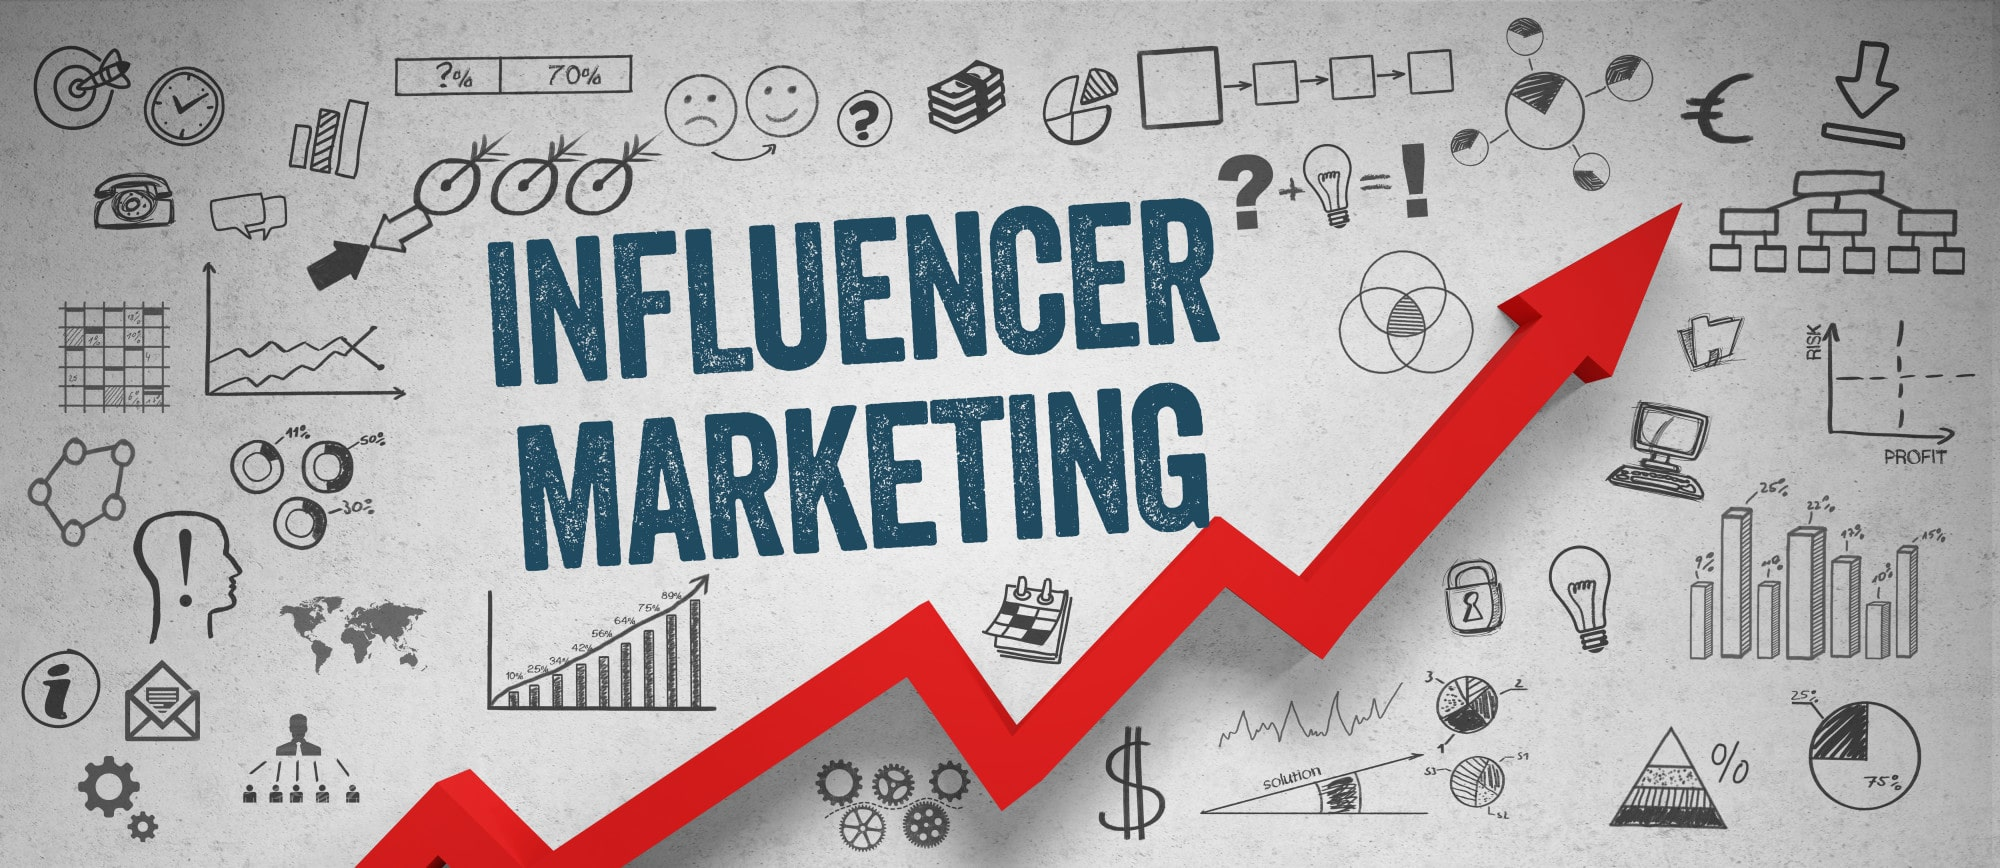 What Is an Influencer? All You Need to Know About Influencer